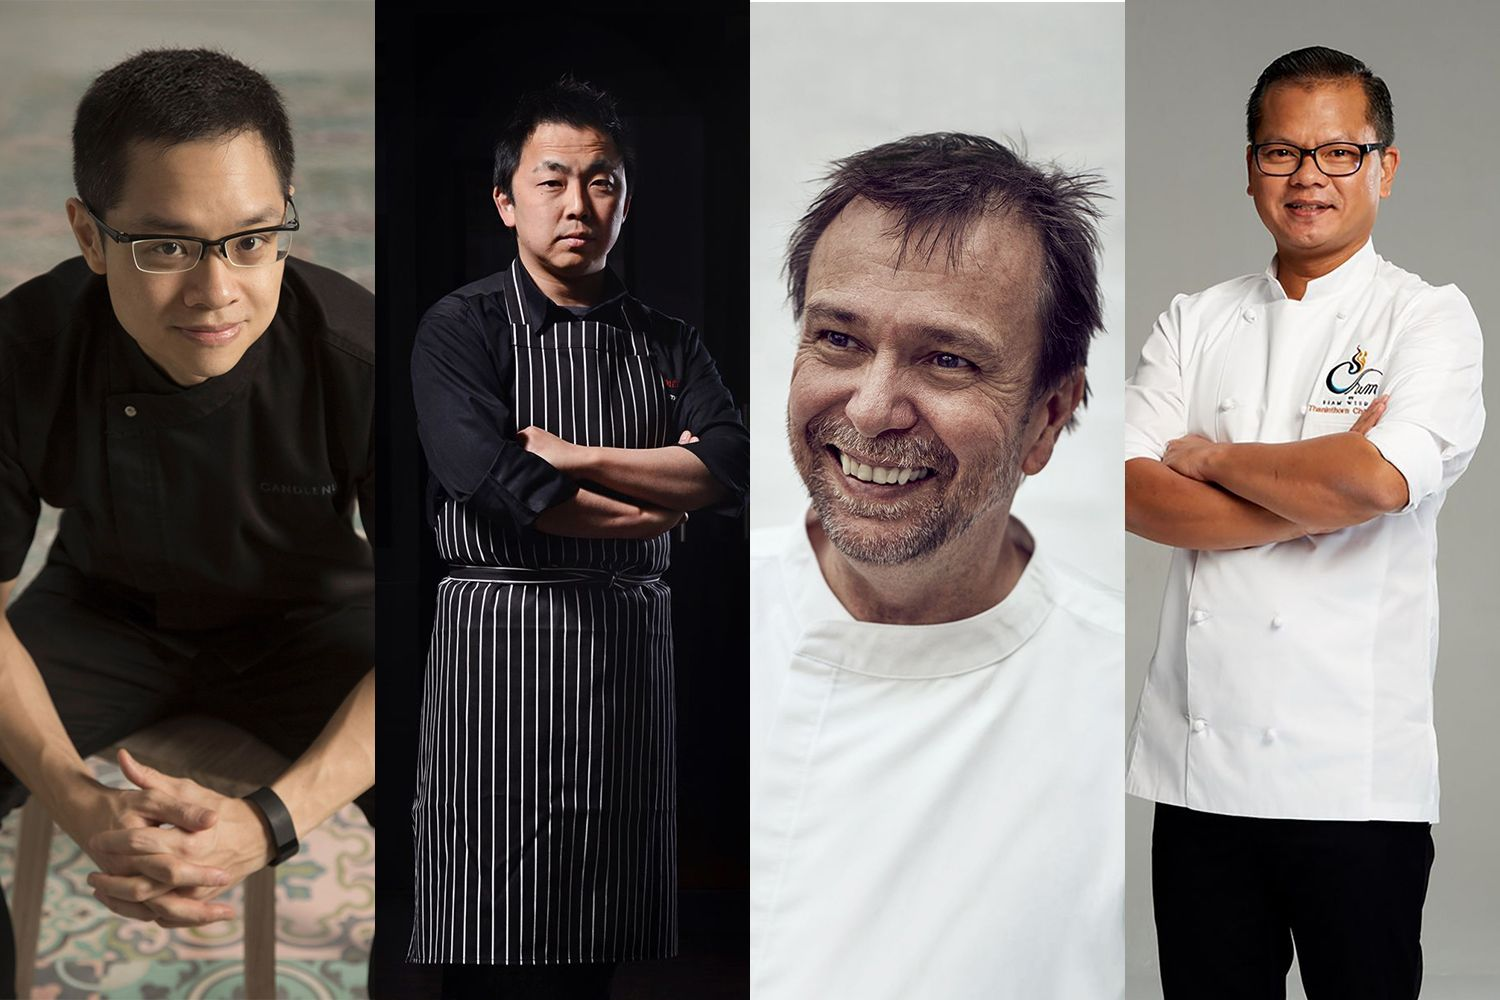 Starting February 27, Dine With 137 Pillars And World-Class Chefs For A Good Cause